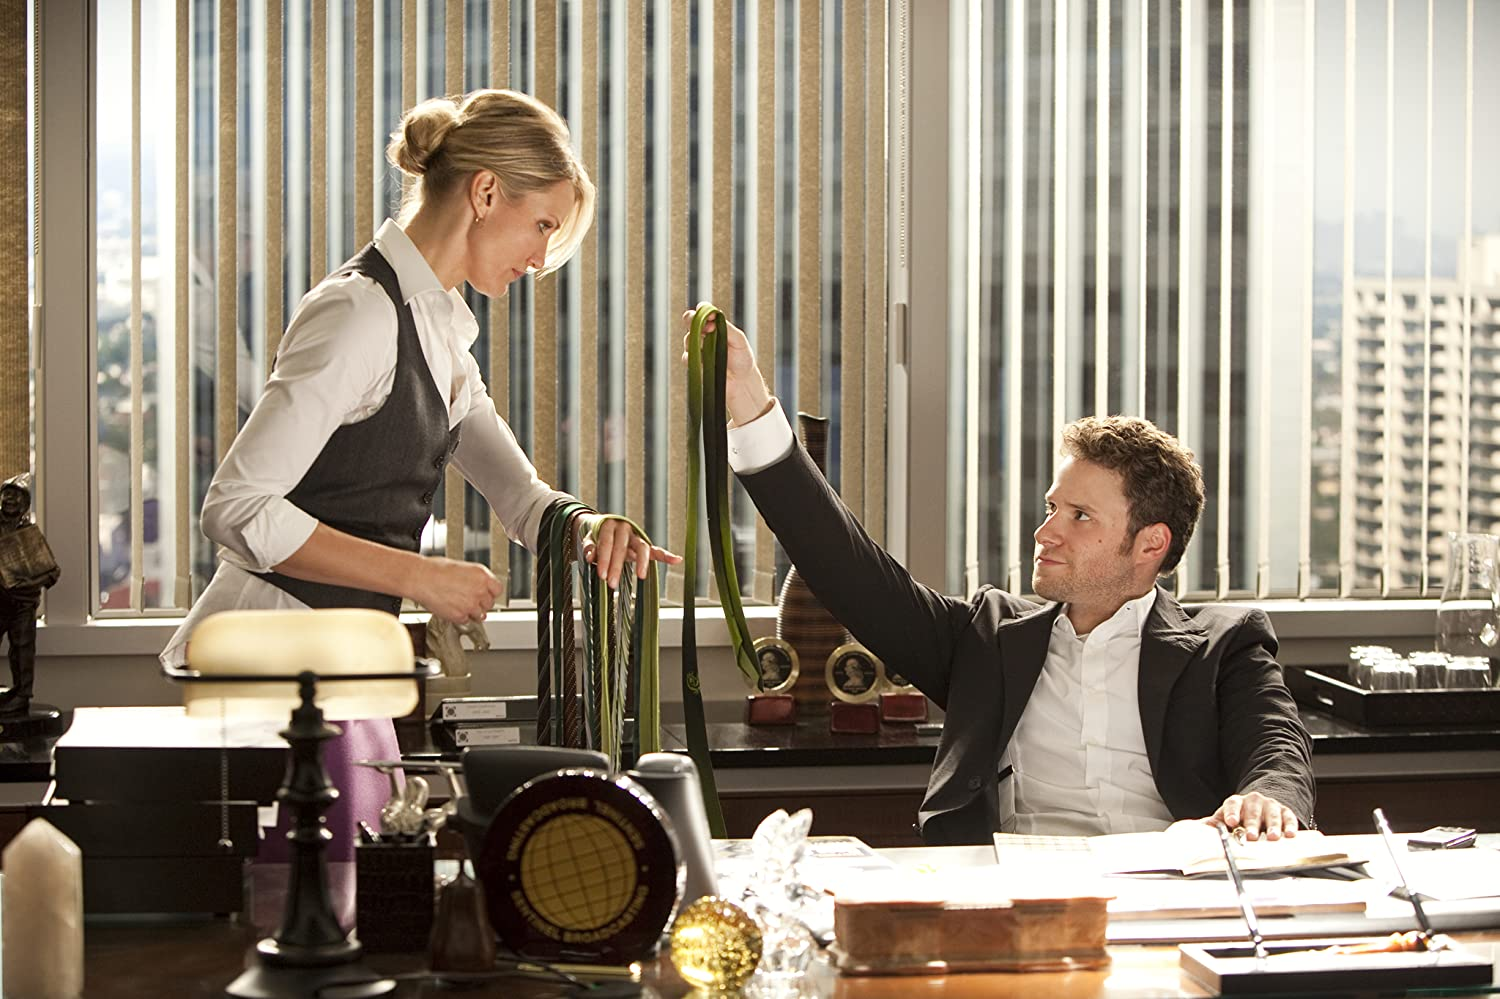 Cameron Diaz and Seth Rogen in The Green Hornet (2011)